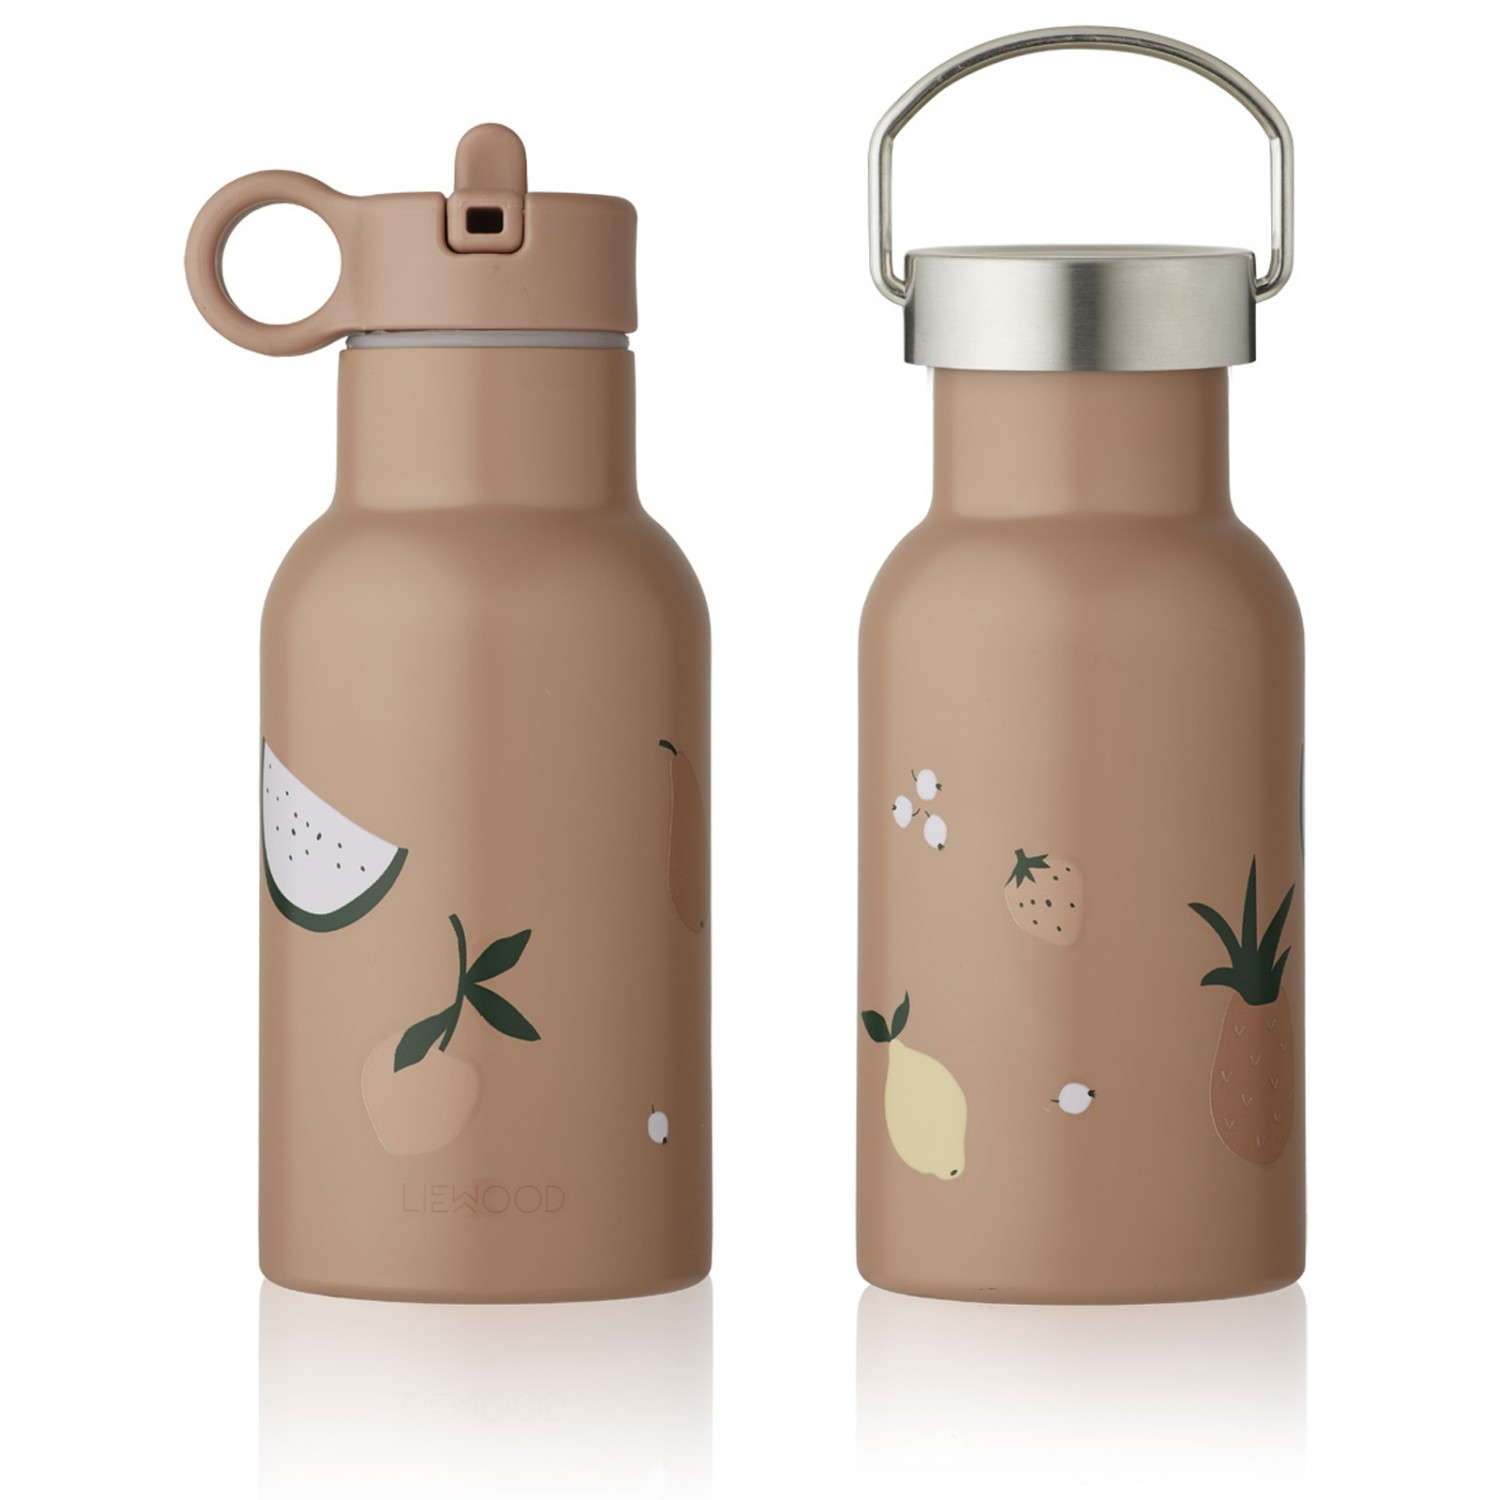 Anker Water Bottle - 350 ml - Fruit pale tuscany